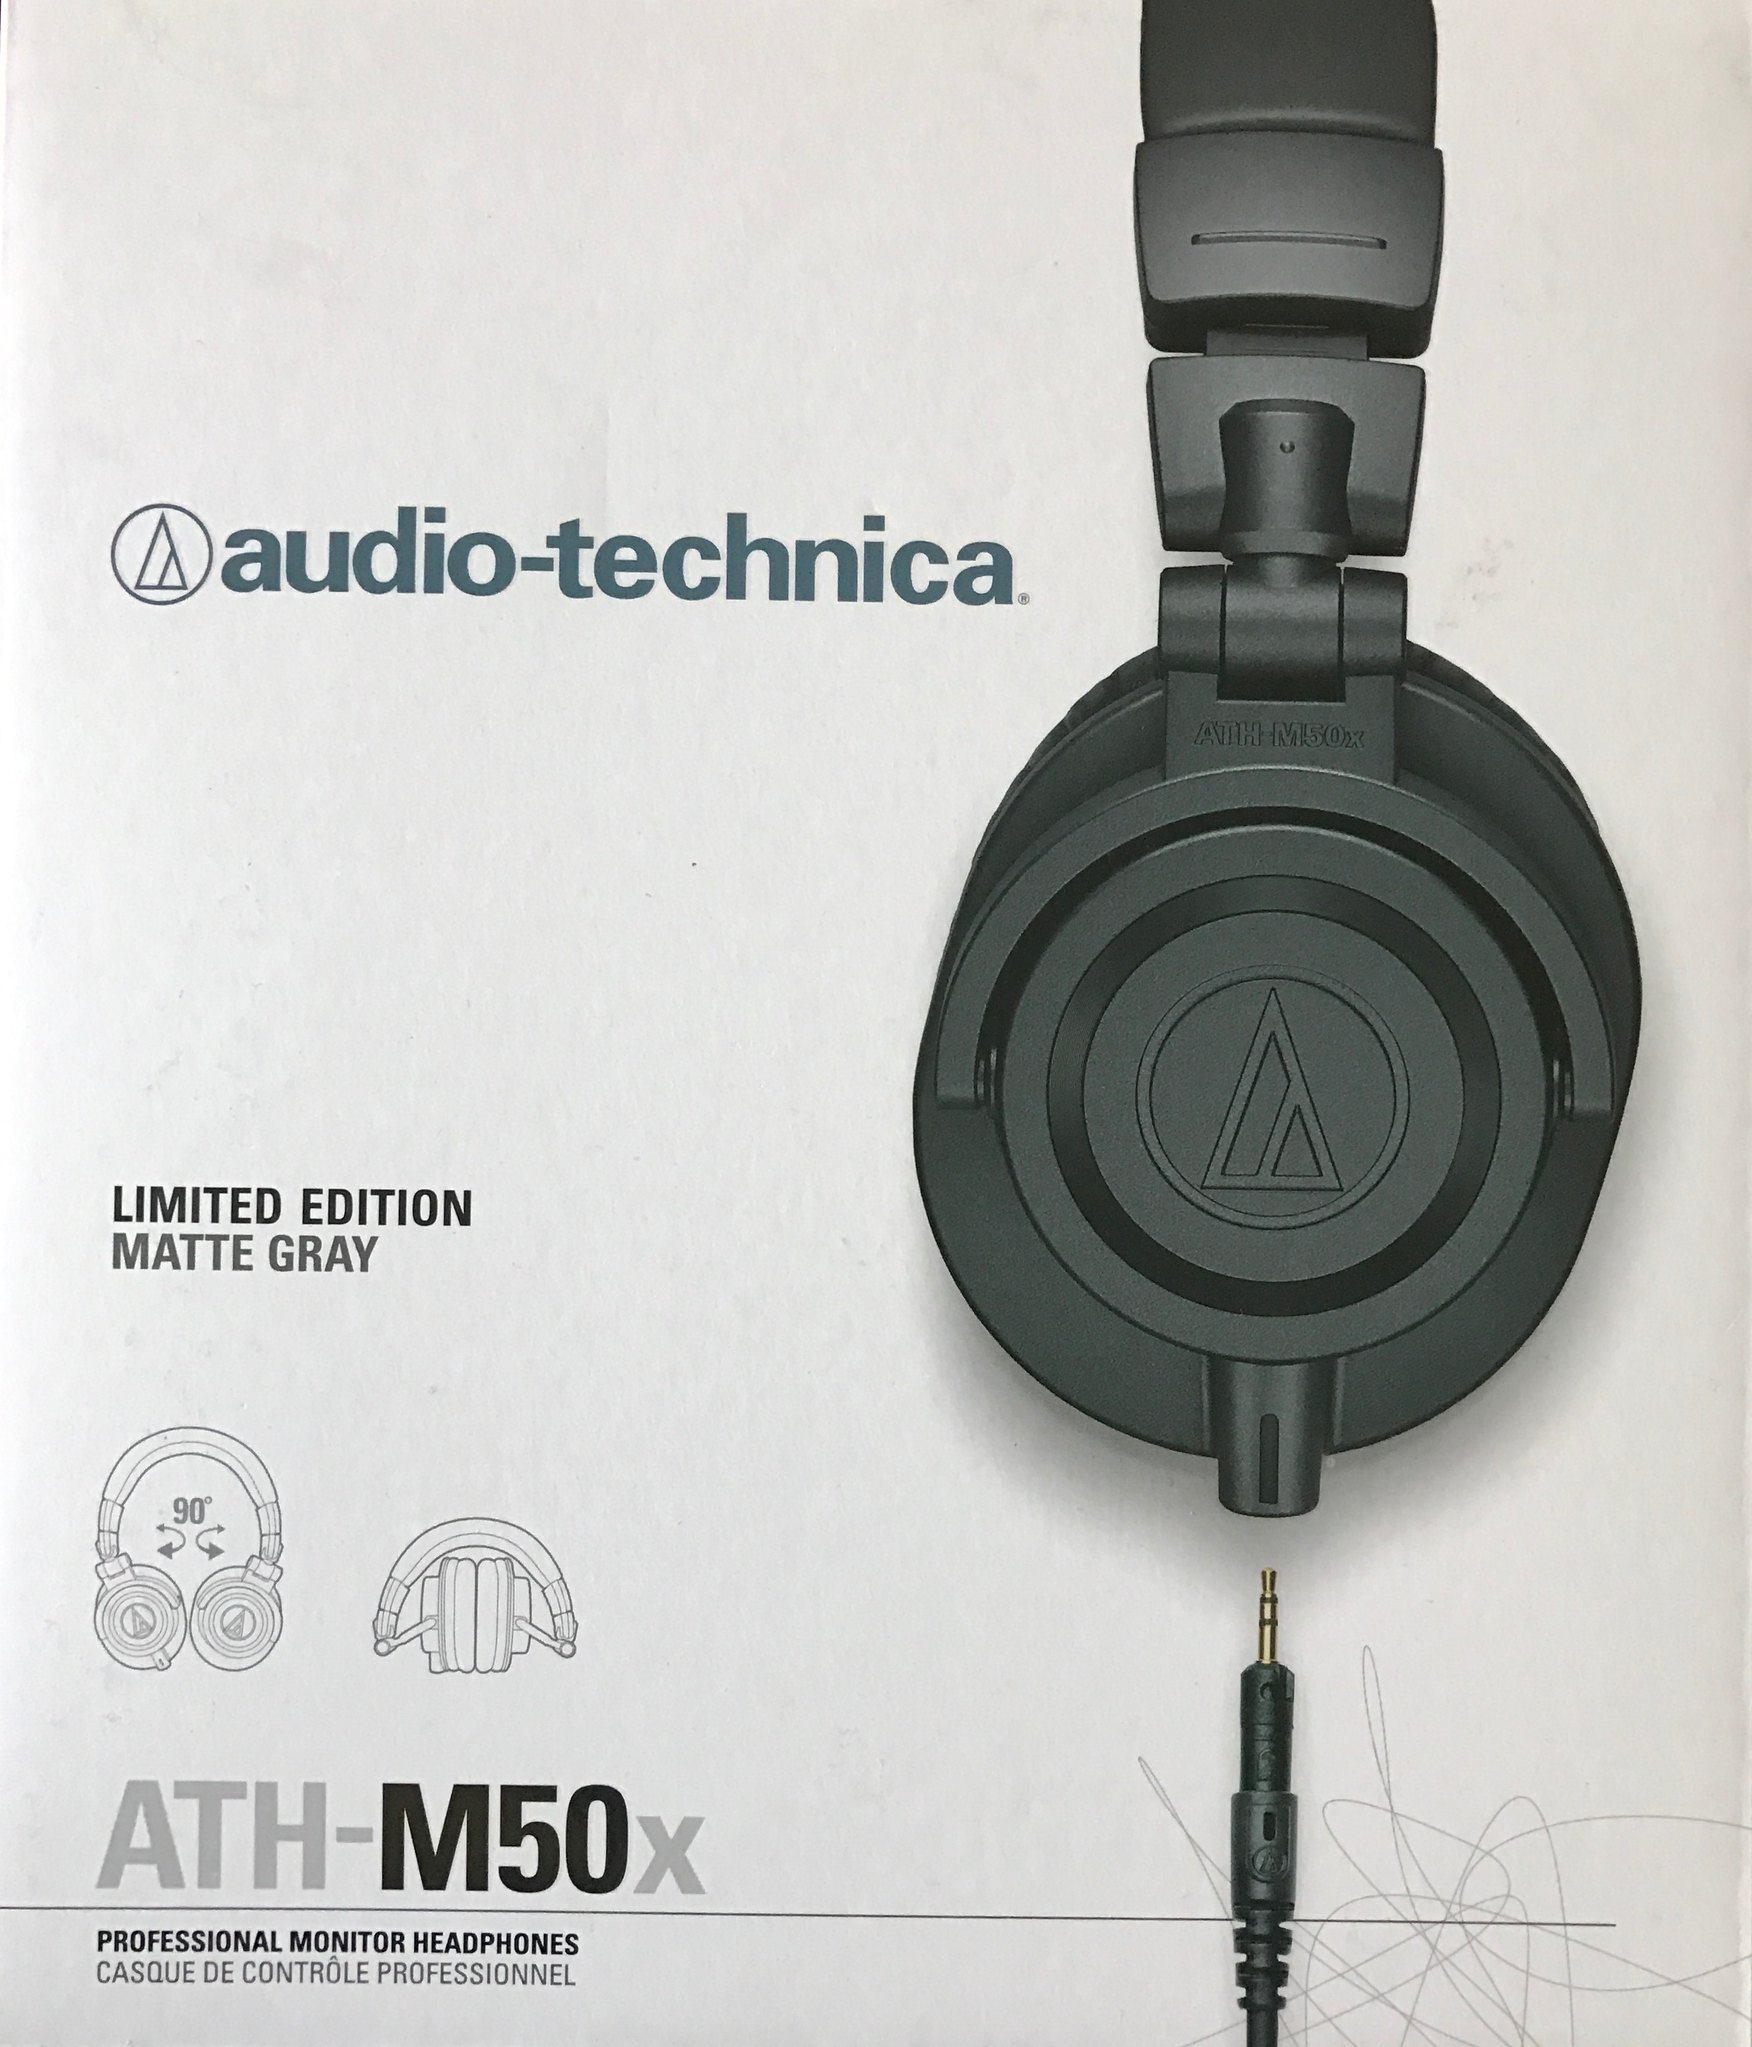 Audio Technica ATH-M50x Matte Gray Limited Edition